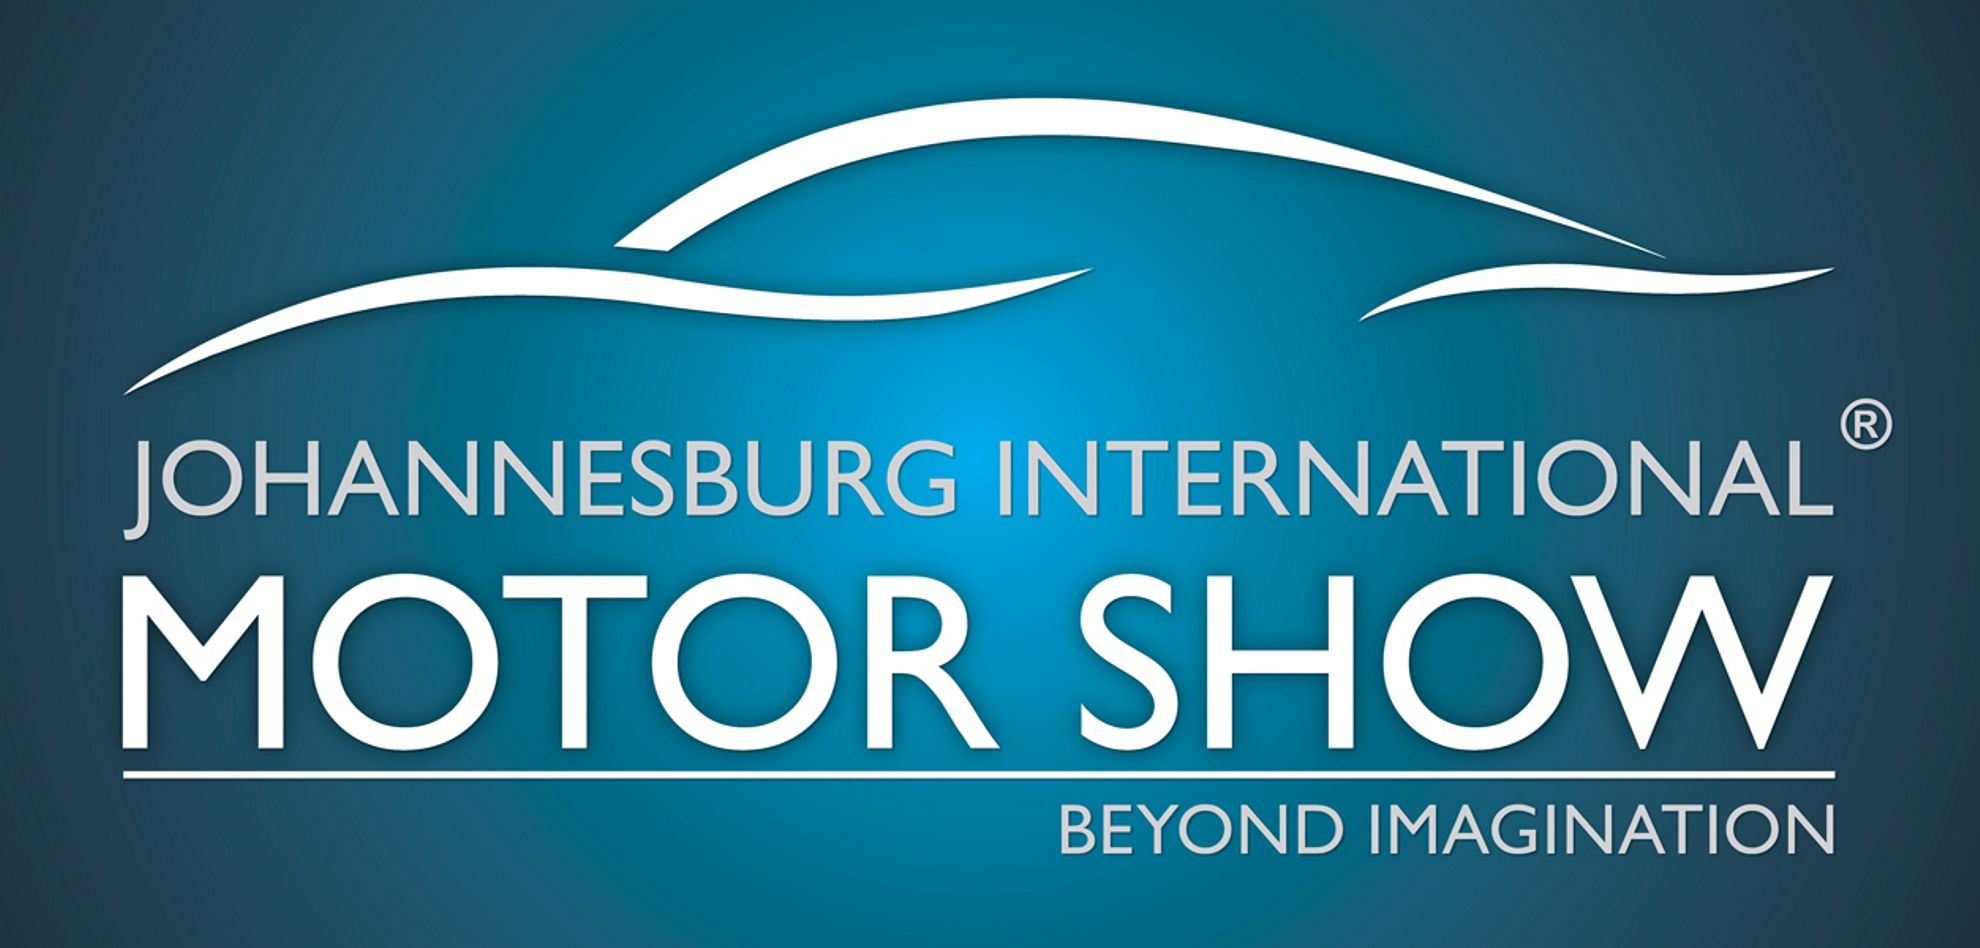 Johannesburg-International-Motor-Show